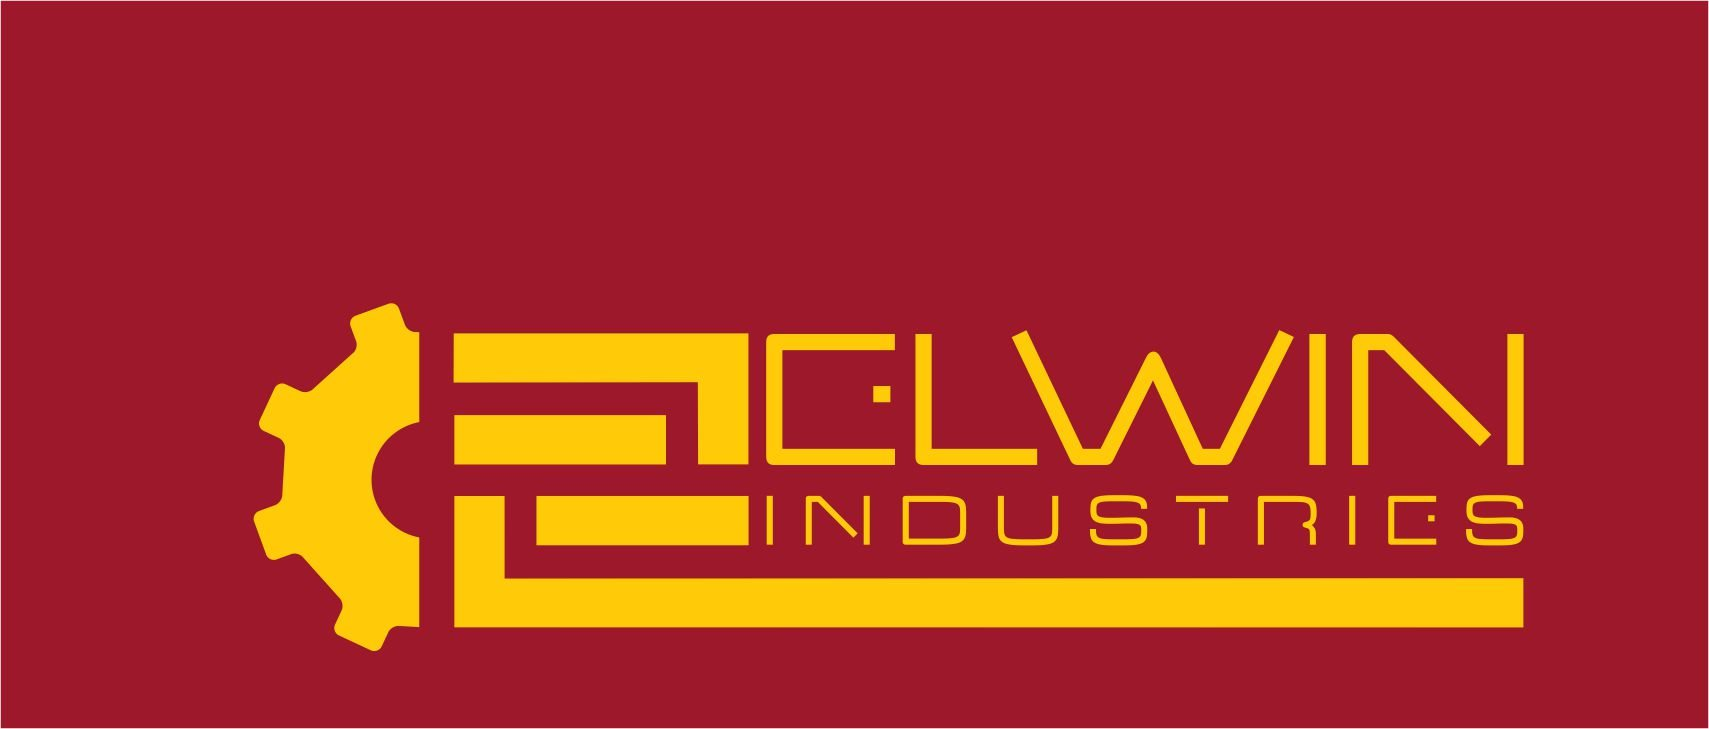 Elwin Industries Ltd